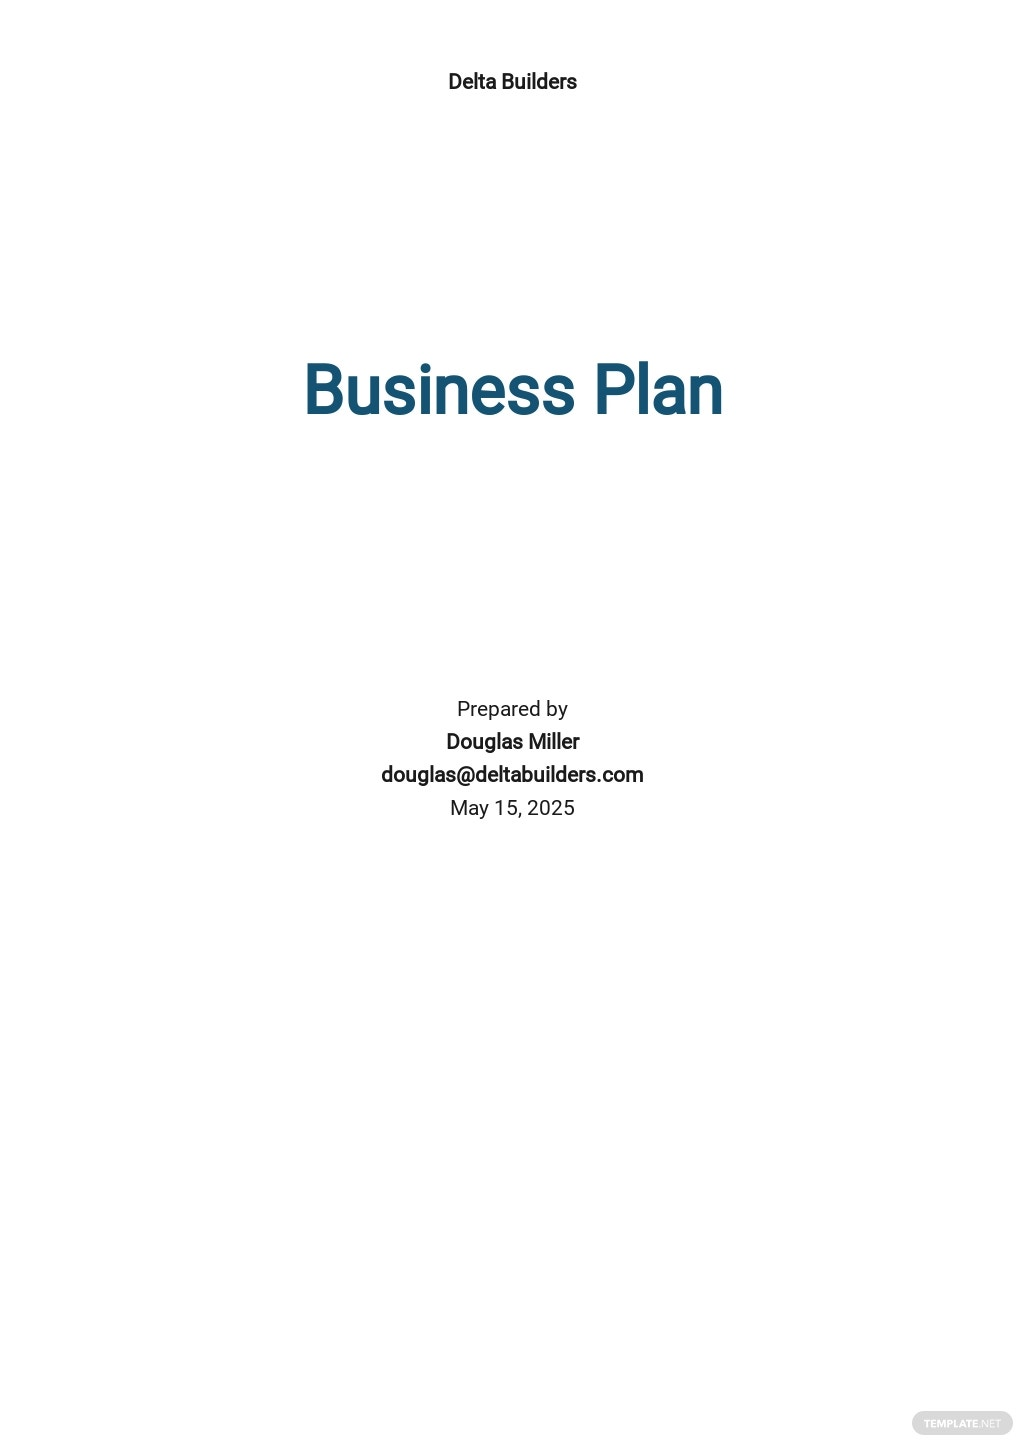 General Contracting Company Business Plan Template